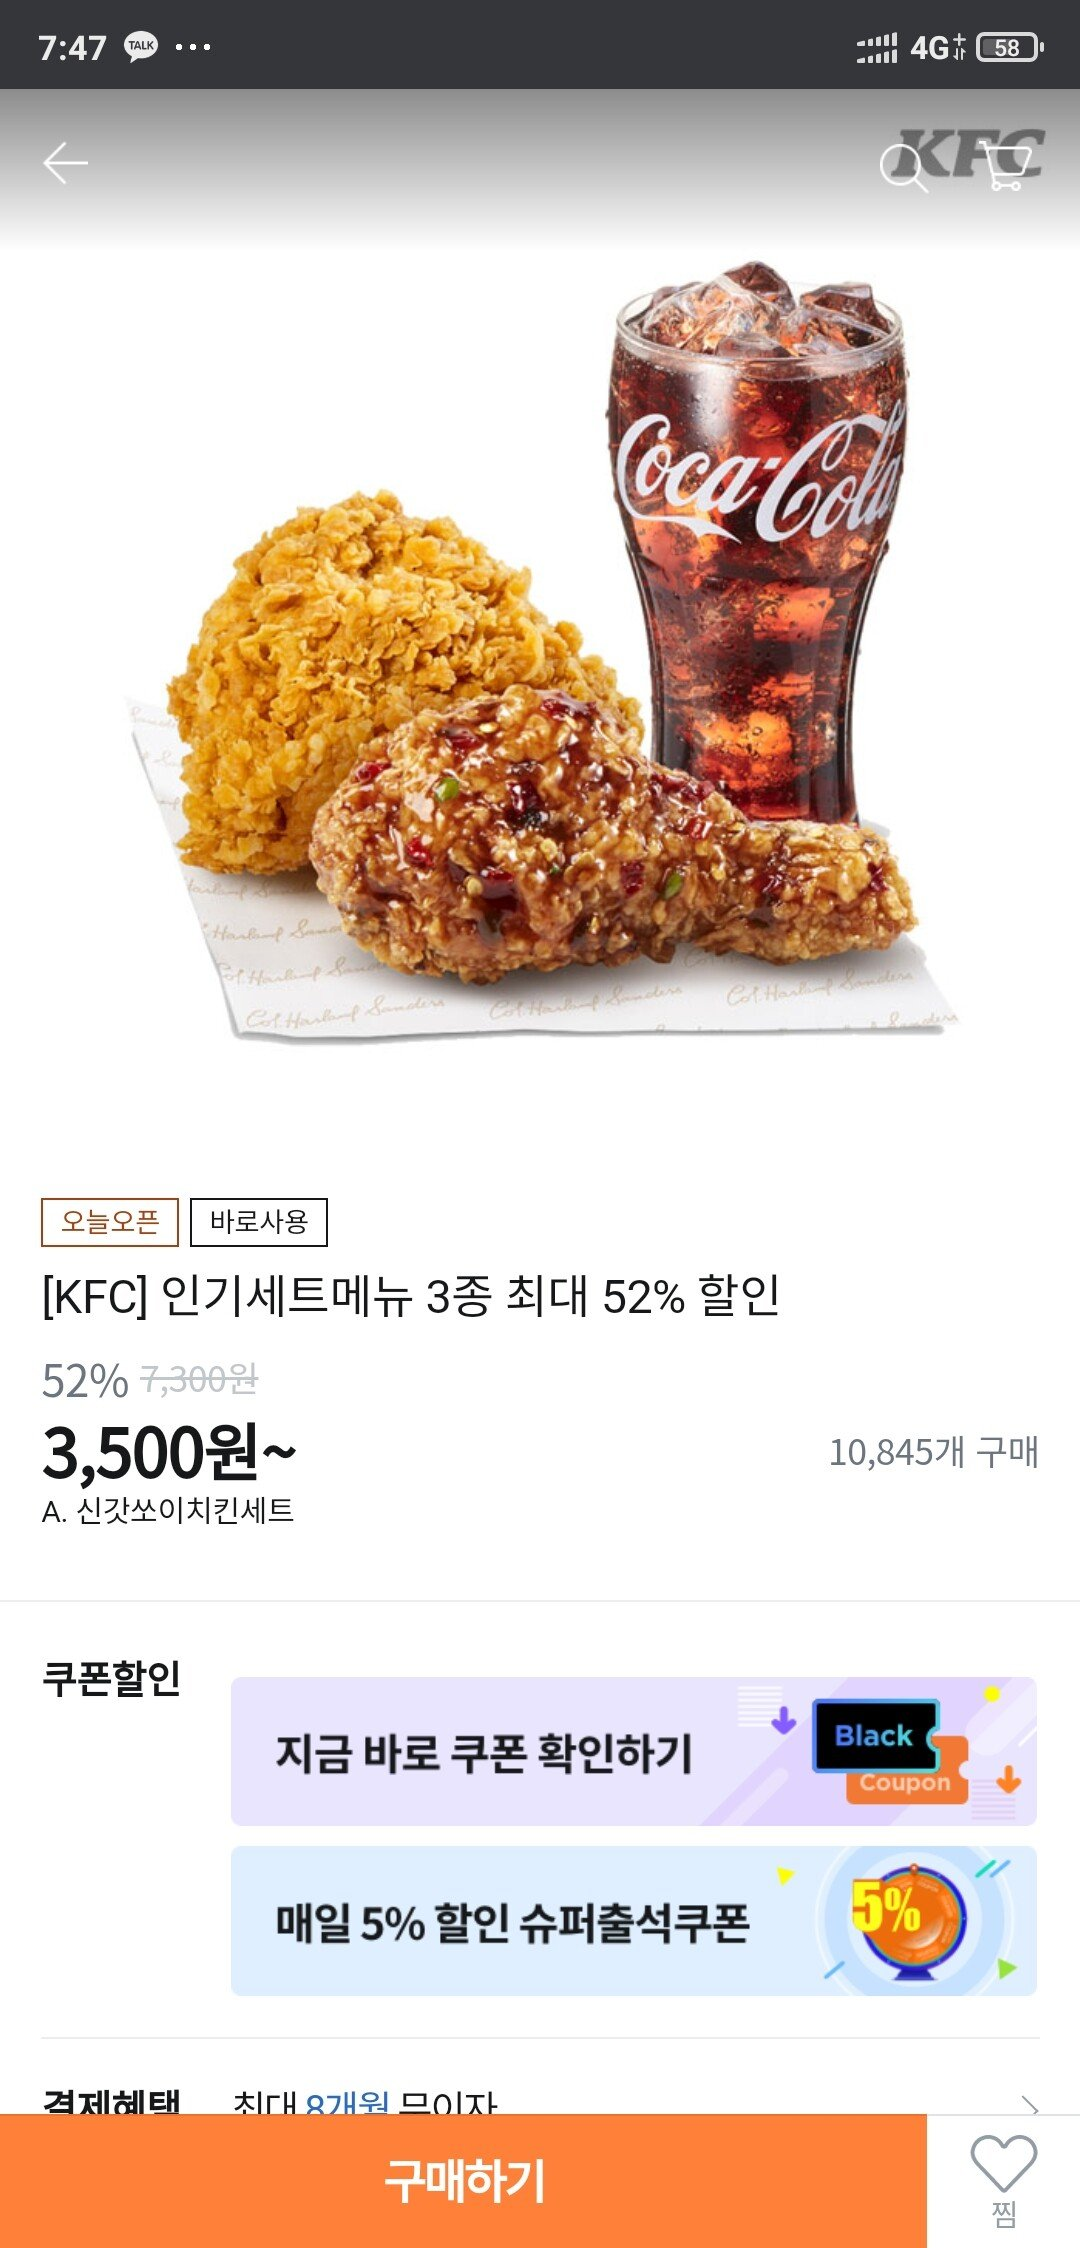 Screenshot_2021-03-08-19-47-07-744_com.android.chrome.jpg [티몬 신갓쏘이세트] kfc (3,500원) (무료)